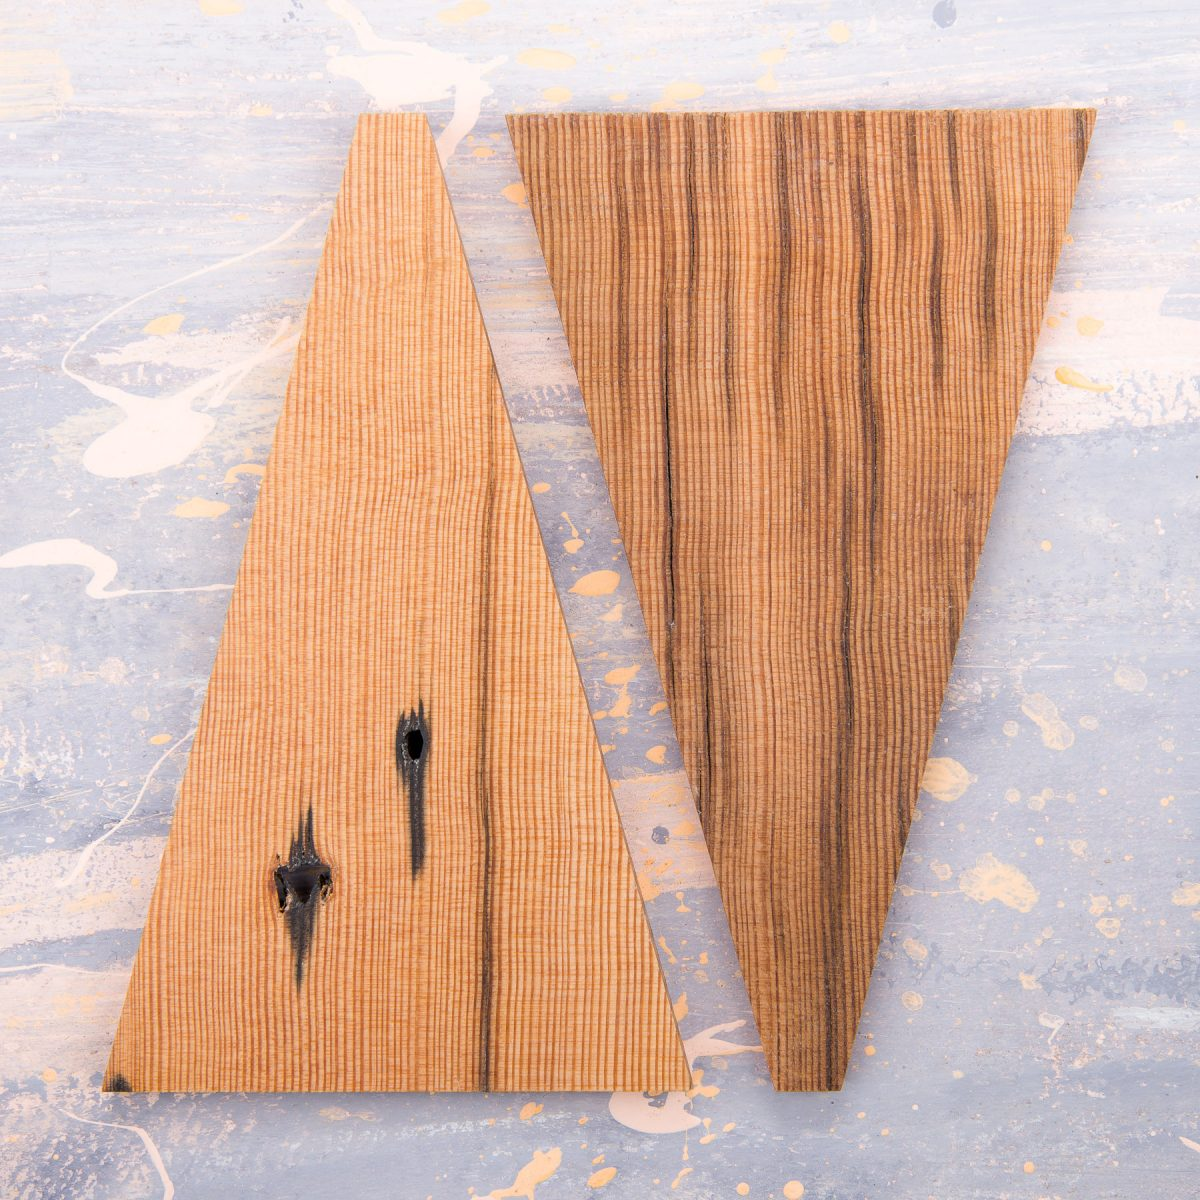 Jan Hendzel Studio samples reclaimed douglas fir roof trusses london